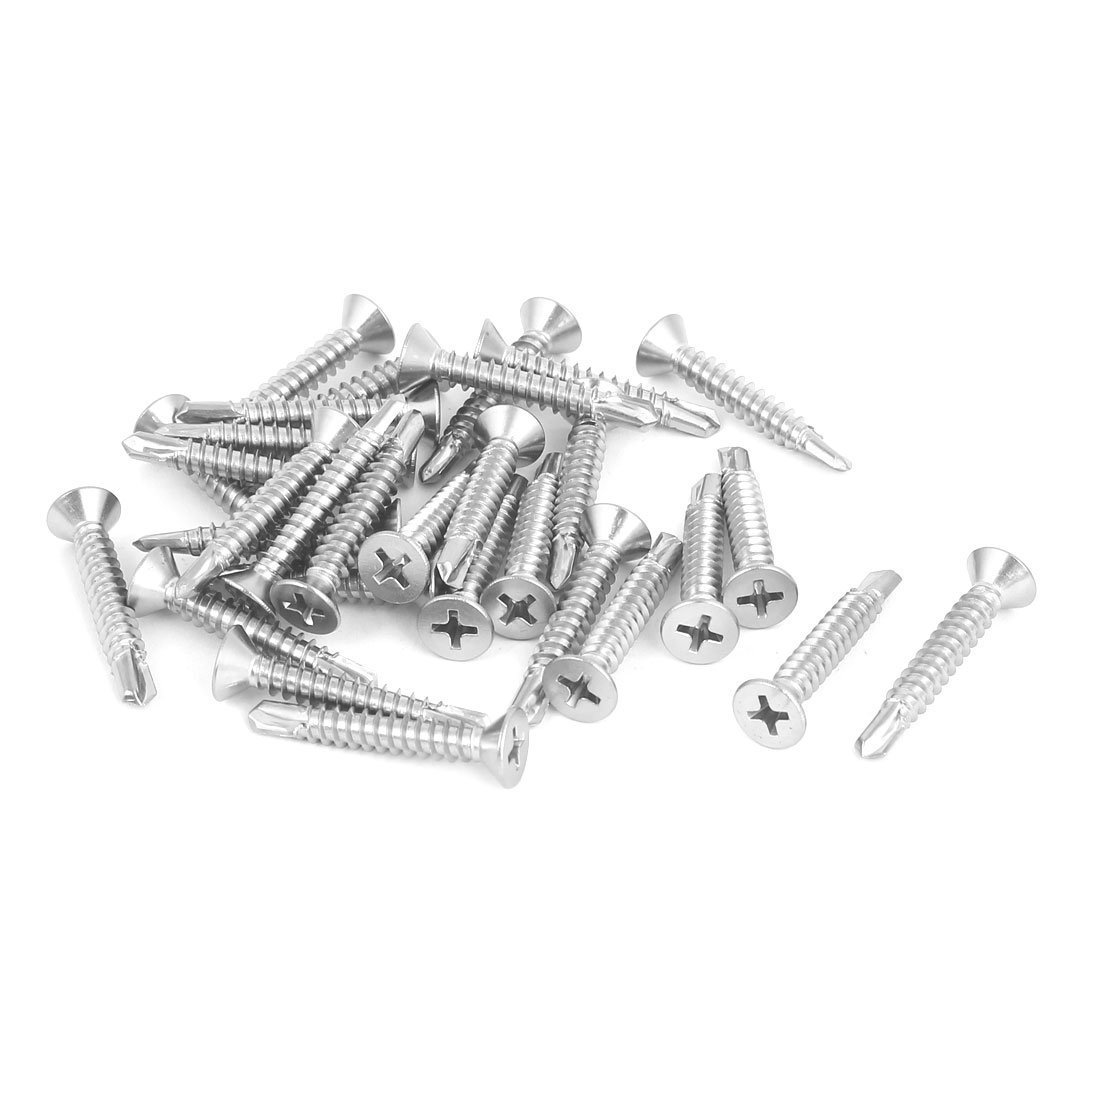 Uxcell a16062700ux0507 M4.8 x 32mm 410 Stainless Steel Countersunk Head Self Drilling Screws